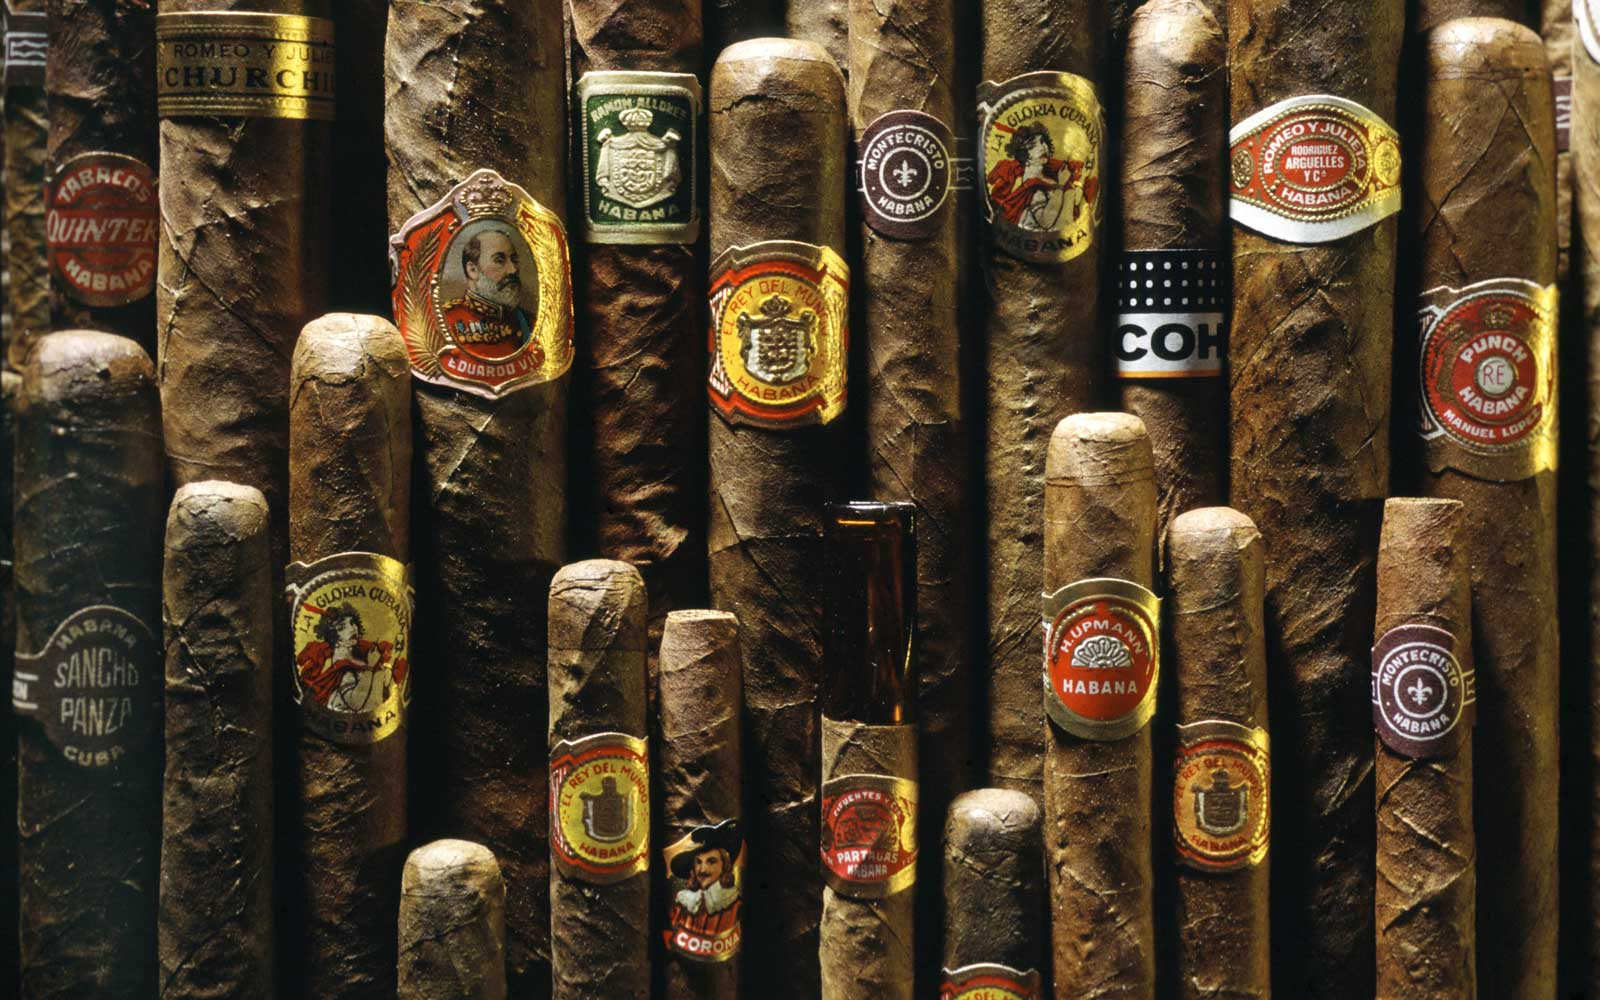 Americans Can Now Bring Cuban Cigars and Rum into the U.S.